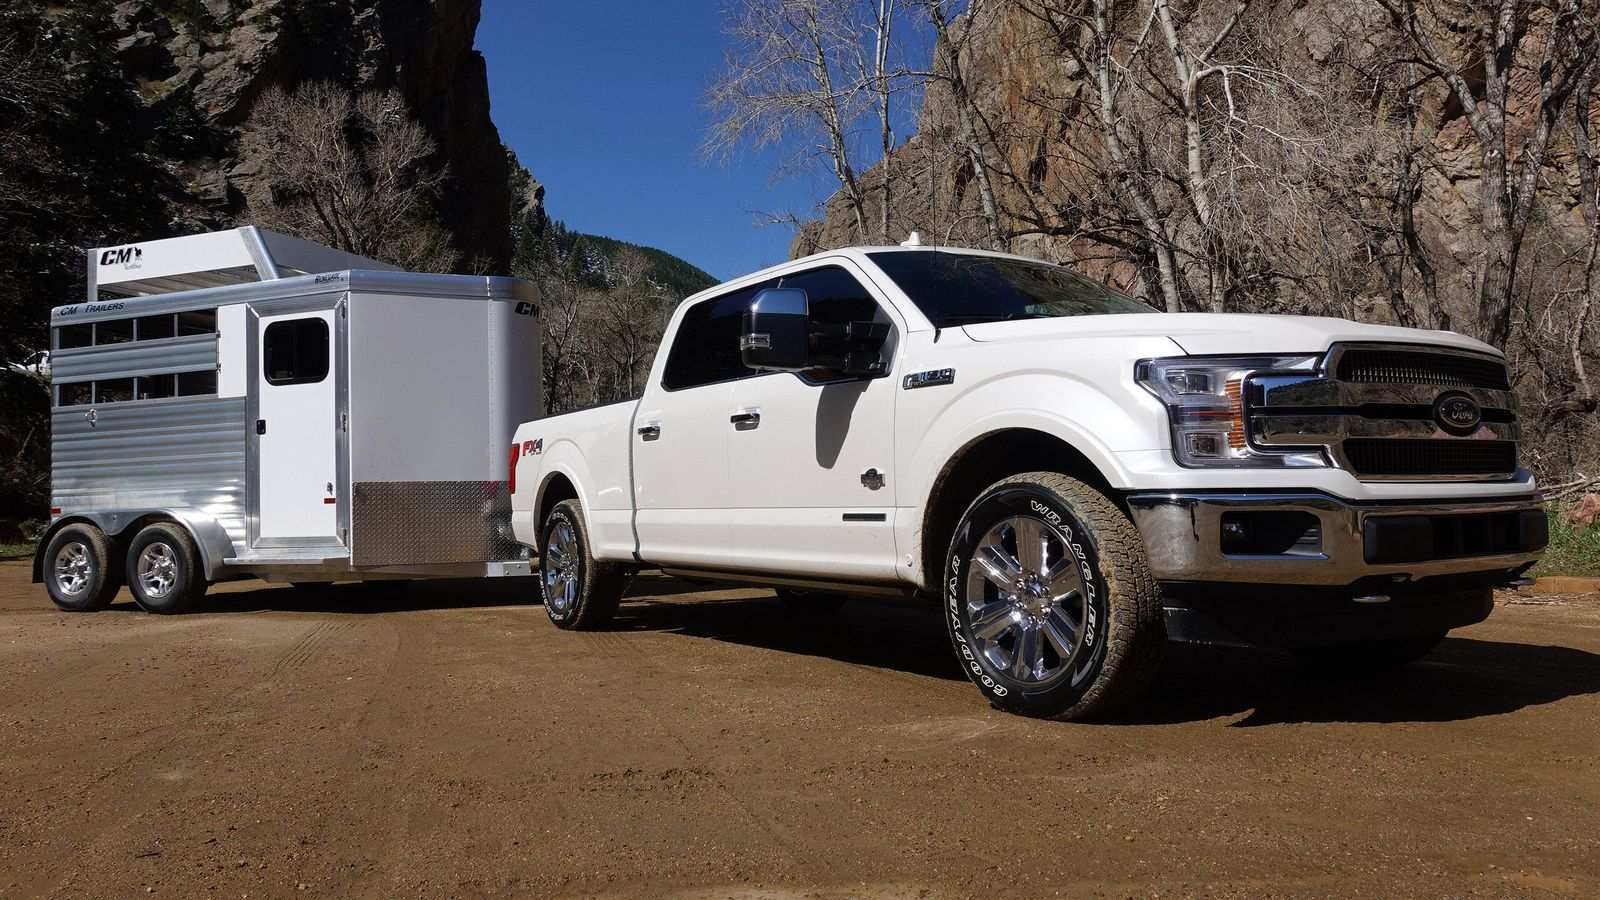 46 All New New Ford 2019 F 150 Diesel Picture Release Date And Review Concept by New Ford 2019 F 150 Diesel Picture Release Date And Review